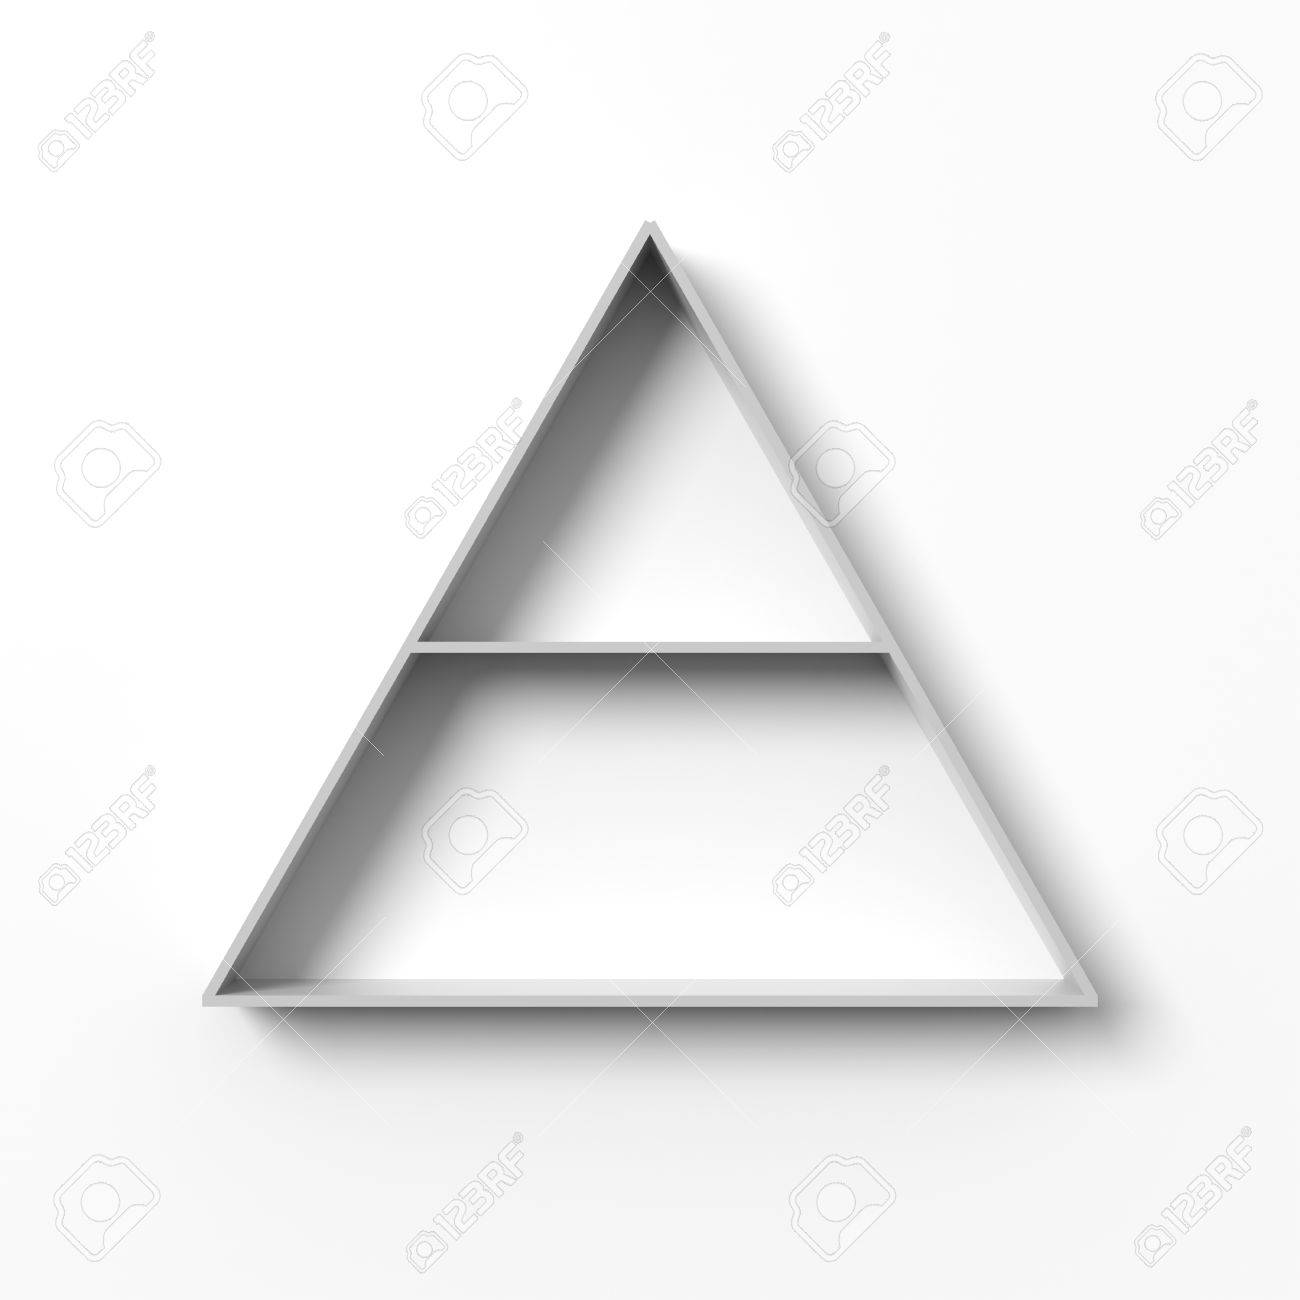 White Triangular Shelves Hanging On A Wall With Light And Shadows